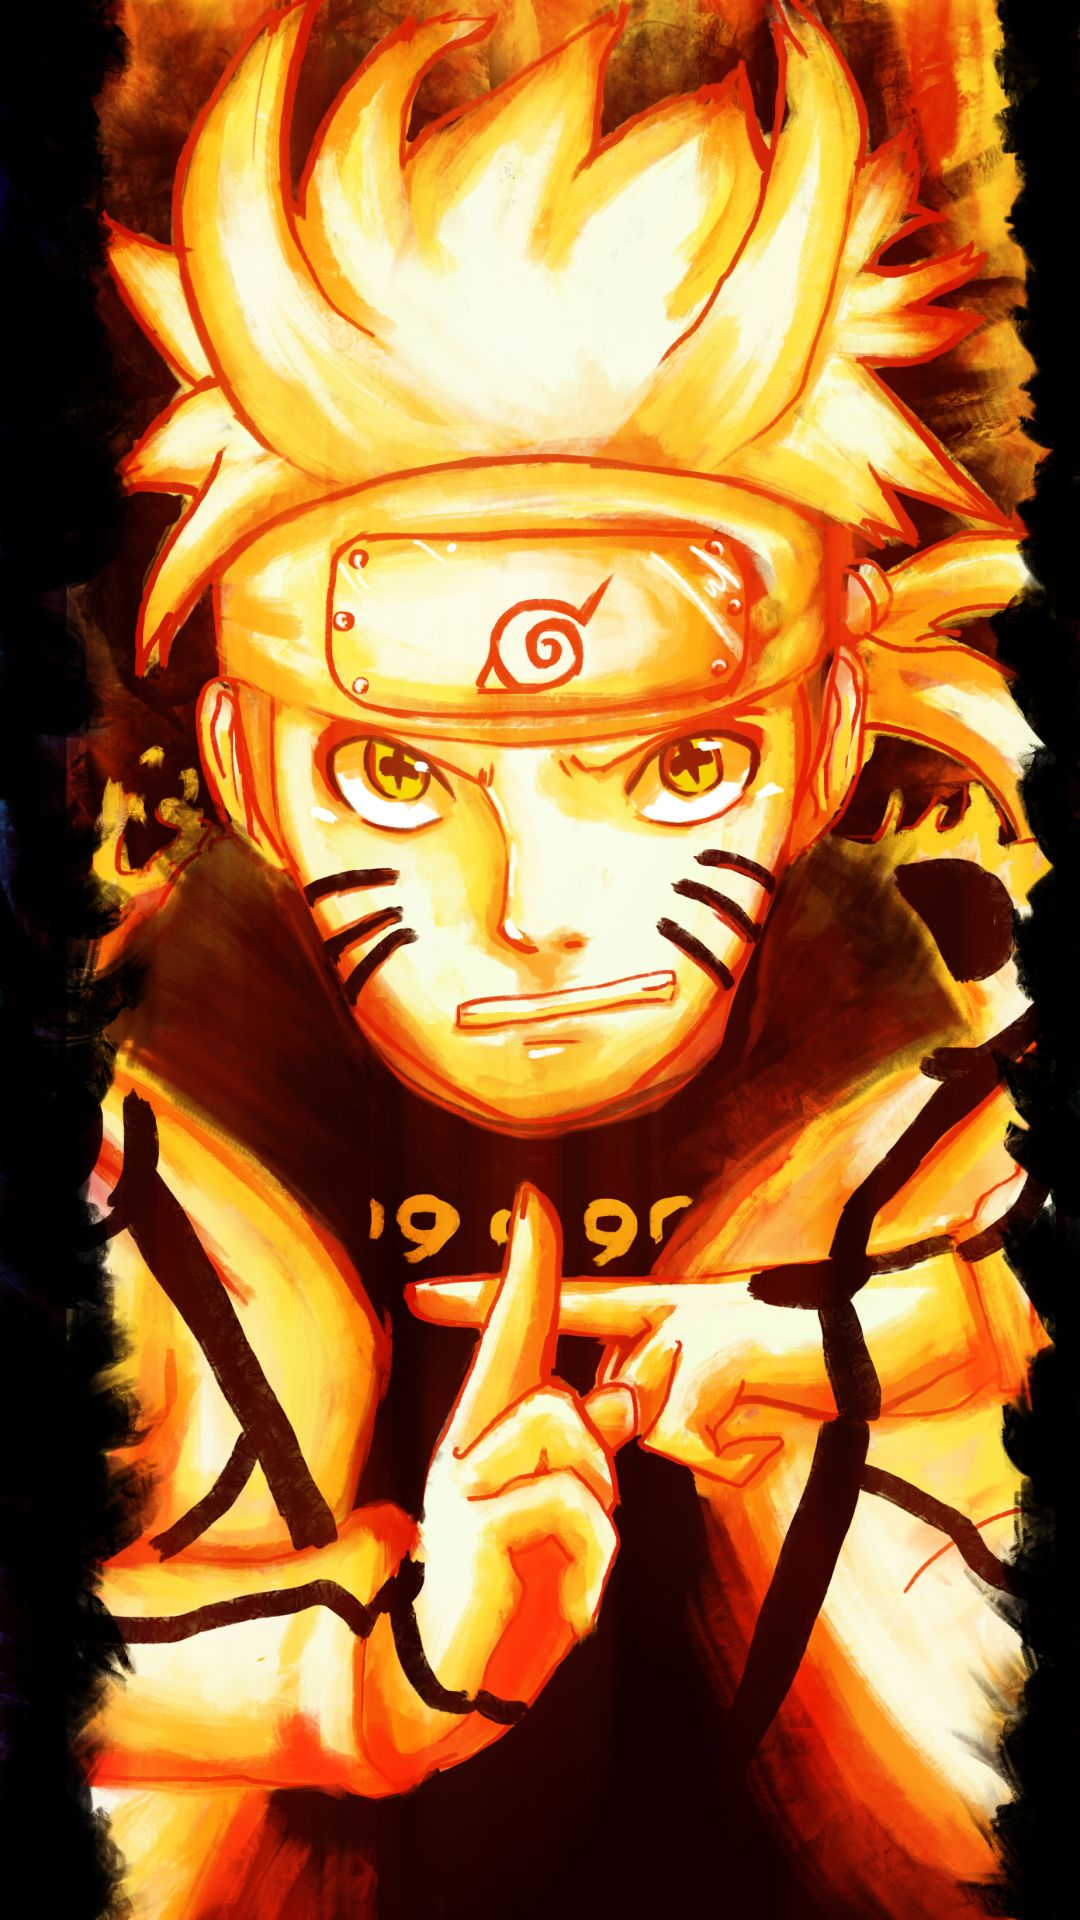 Naruto Wallpaper iphone 6 09 1080 x 1920